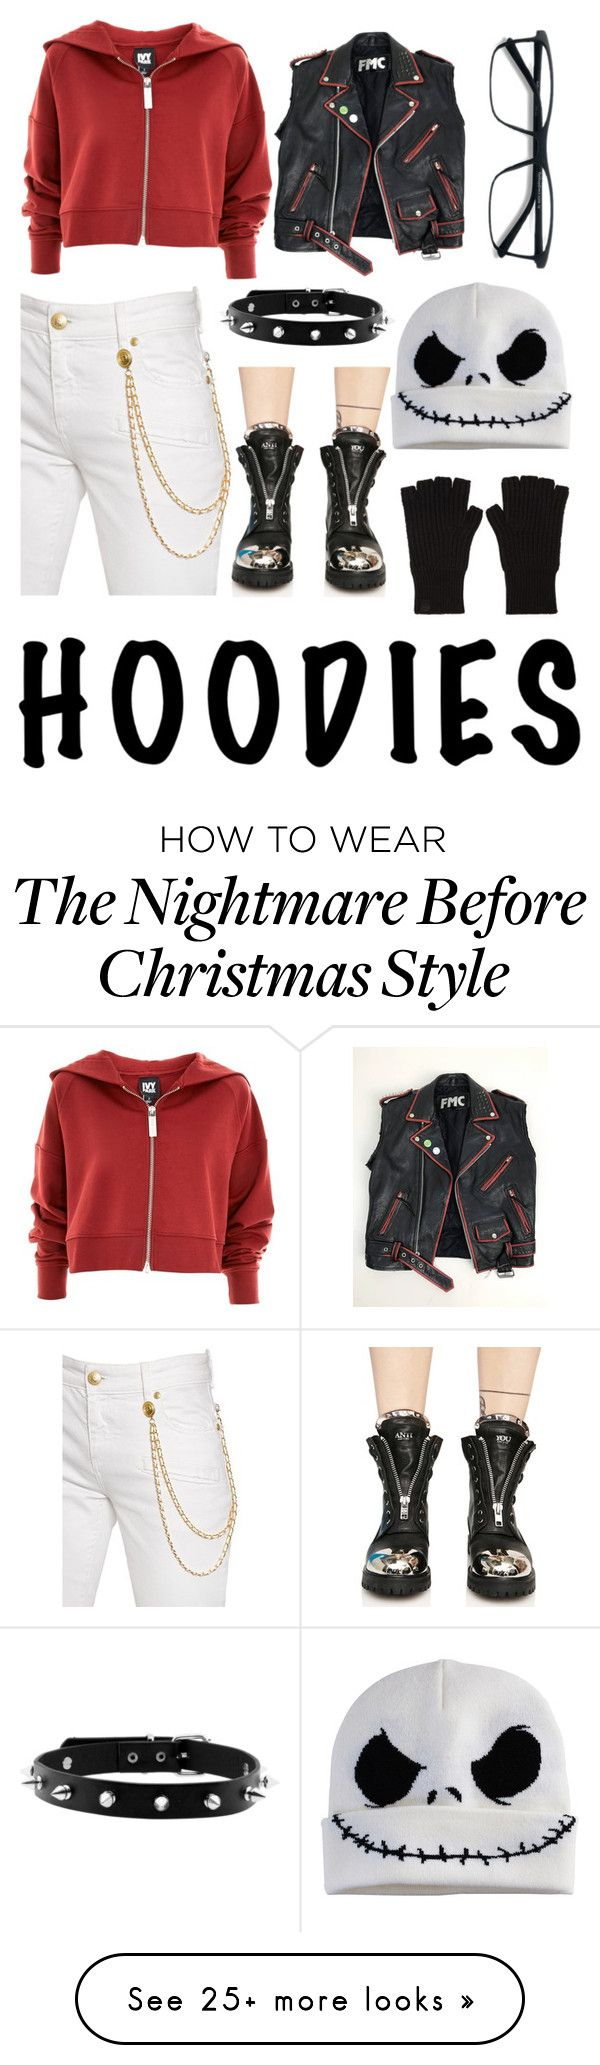 """""""Pittsburgh colder than this"""" by kai-mo-chan on Polyvore featuring Topshop, rag & bone, EyeBuyDirect.com, Pierre Balmain, Current Mood and Hoodies"""